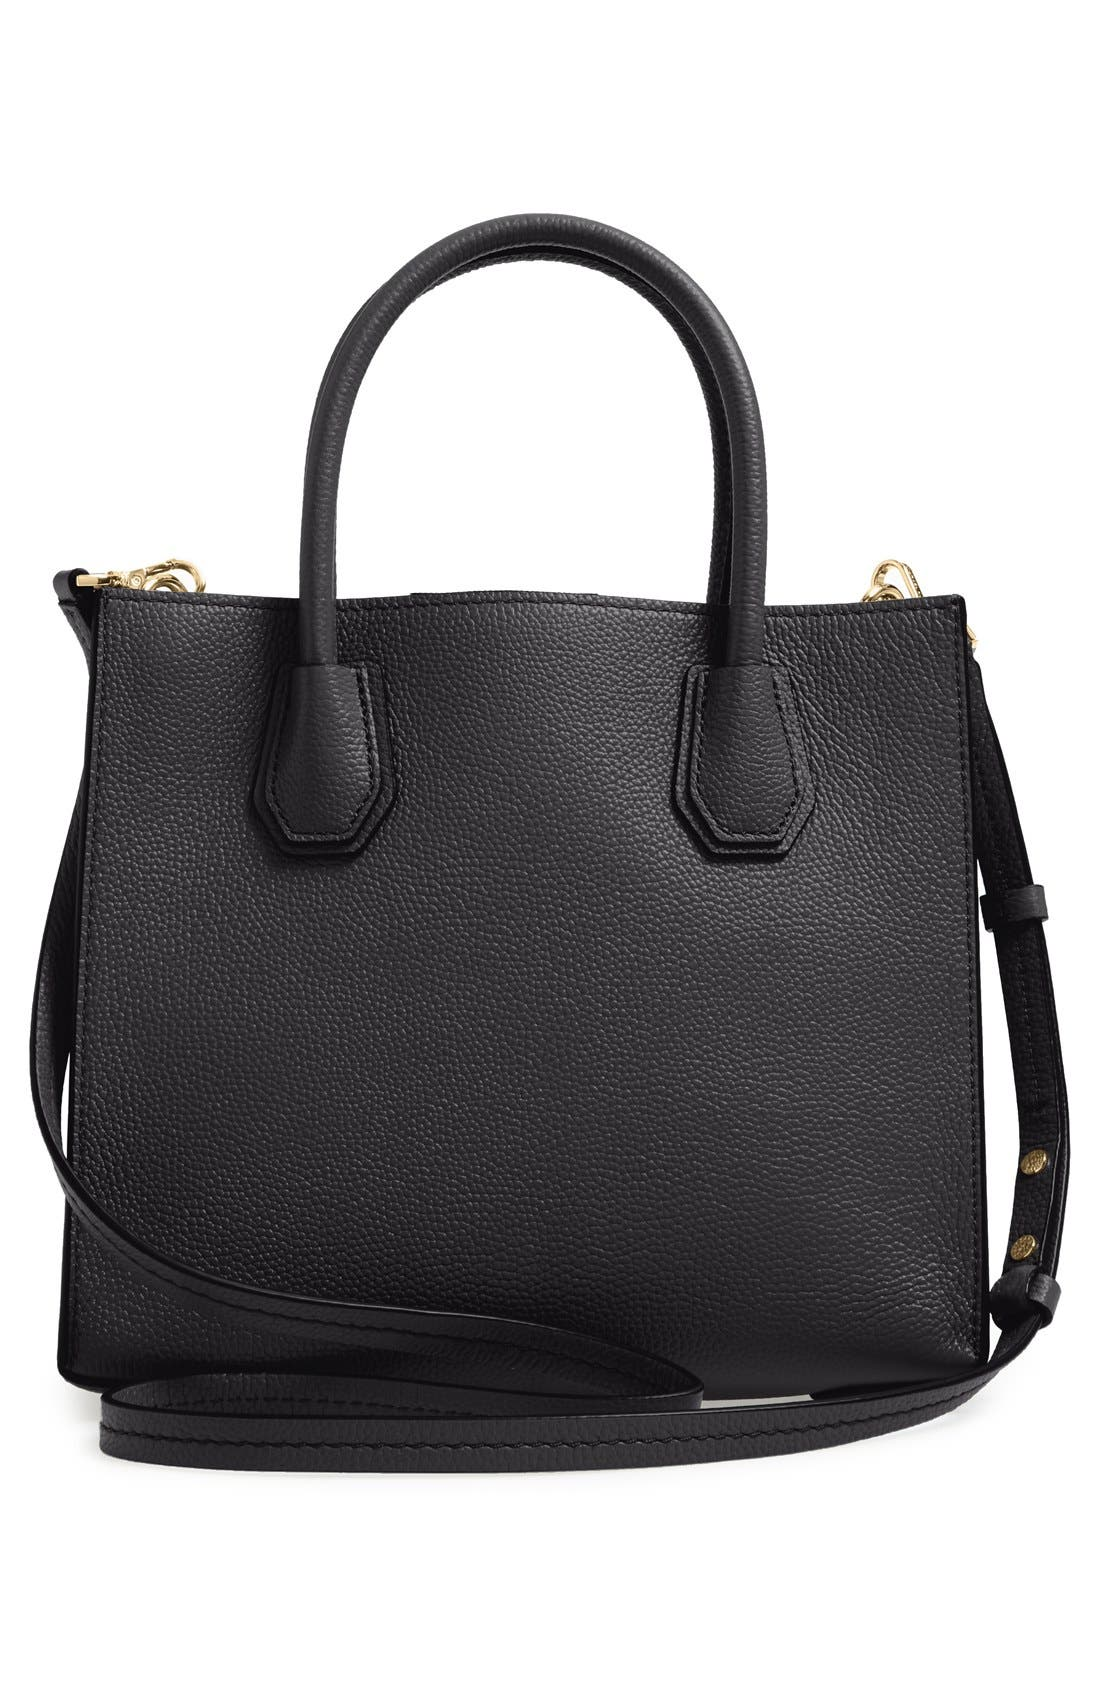 Alternate Image 2  - MICHAEL Michael Kors 'Medium Mercer' Leather Tote